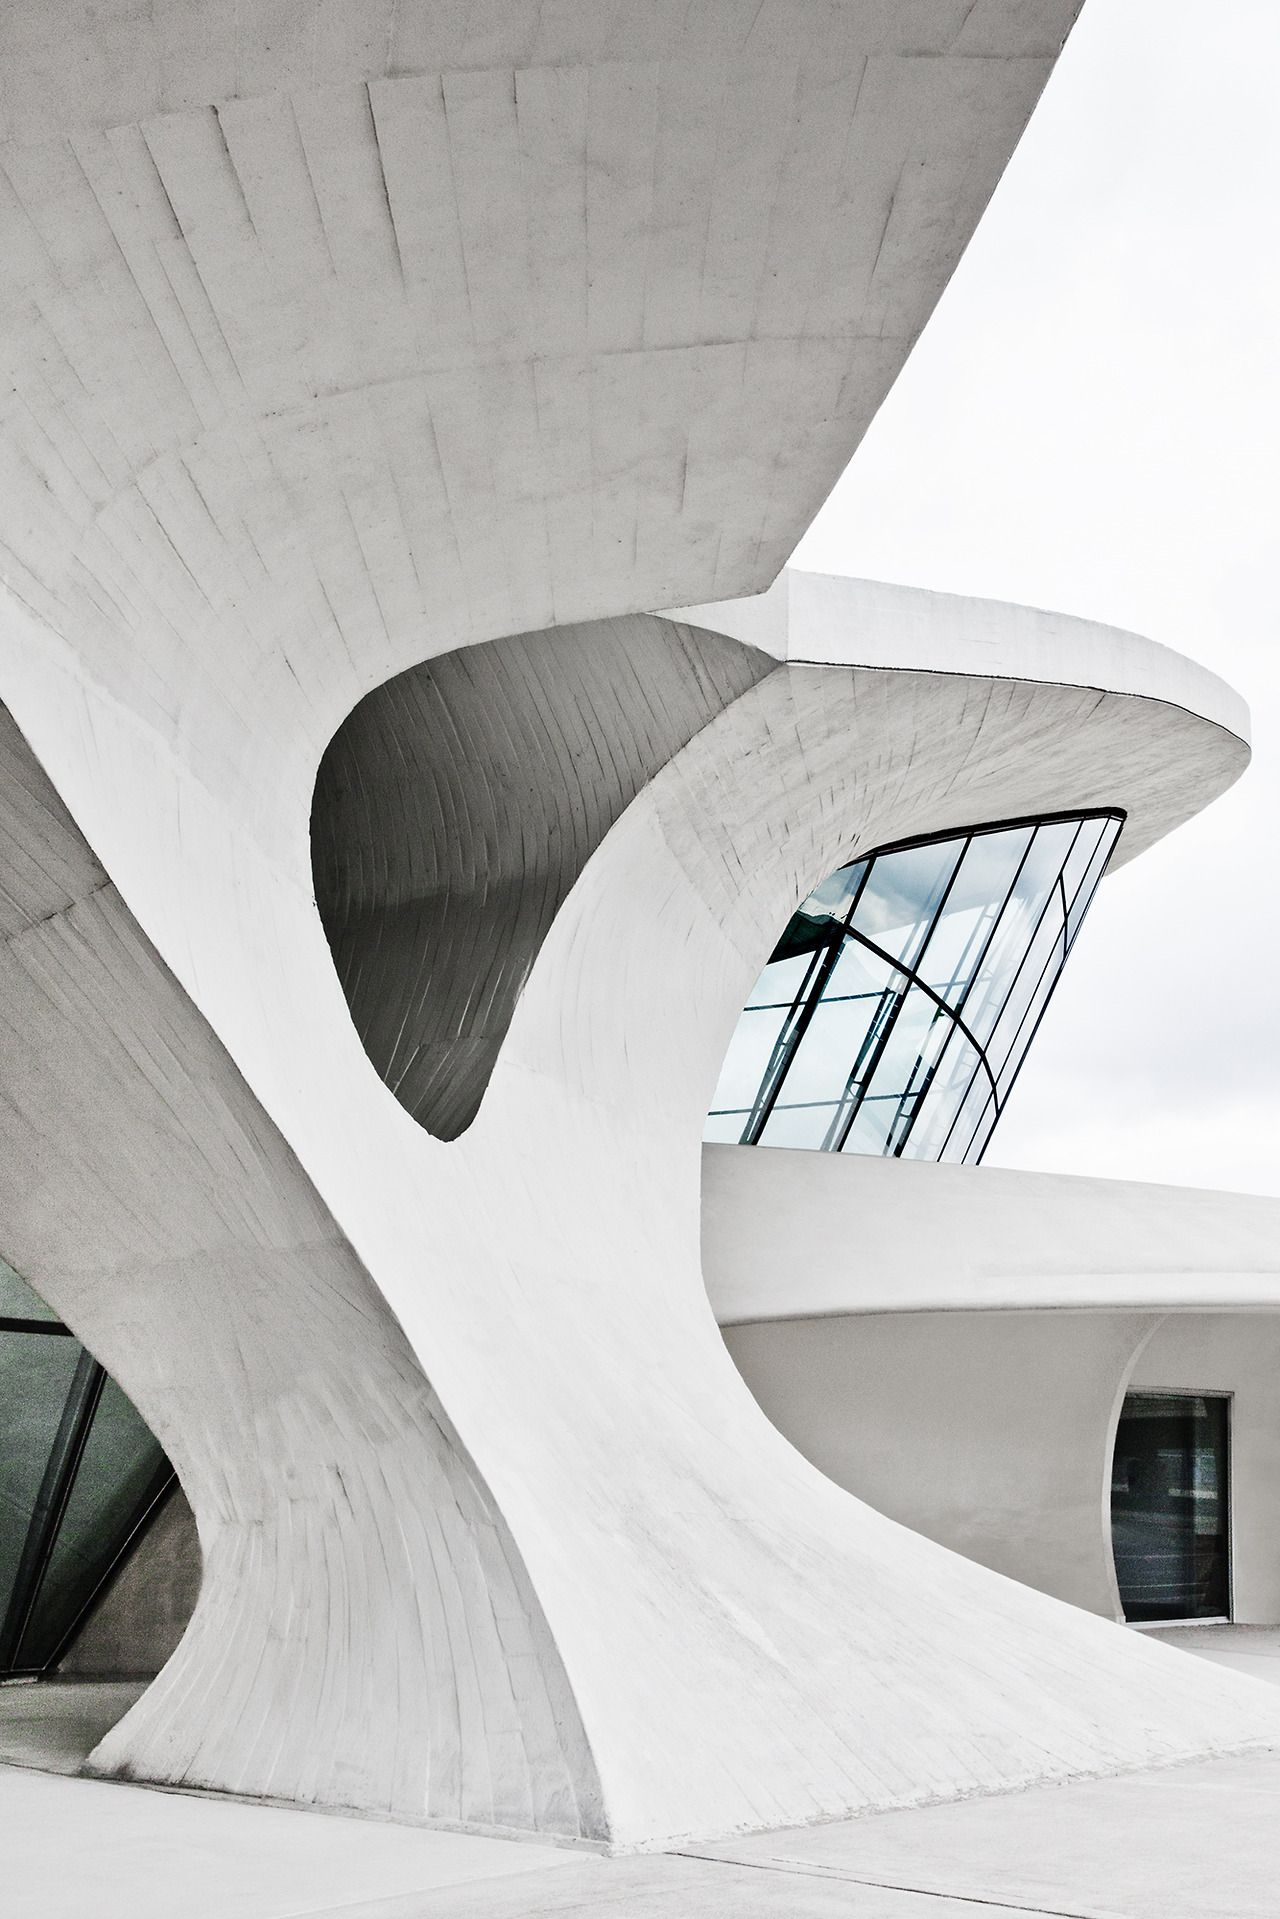 Historic TWA Terminal Restoration Plans Continue to Soar  Eero Saarinen's TWA Flight Center at New York's John F. Kennedy International Airport (JFK) may get a new life after all.